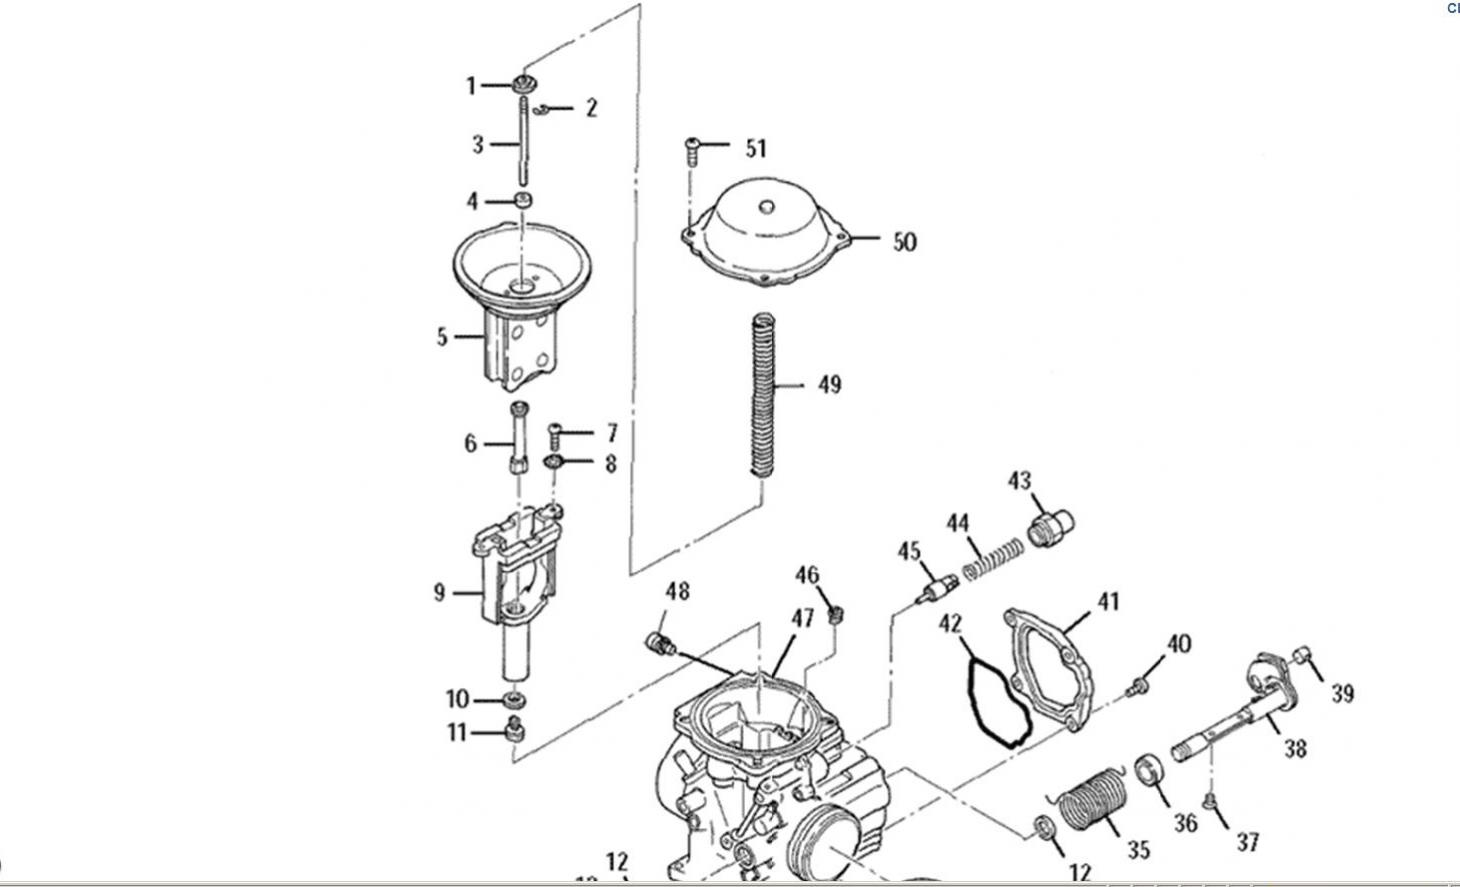 Sportsman 400 carb removal polaris atv rh polarisatv s 2000 polaris sportsman 500 parts diagram